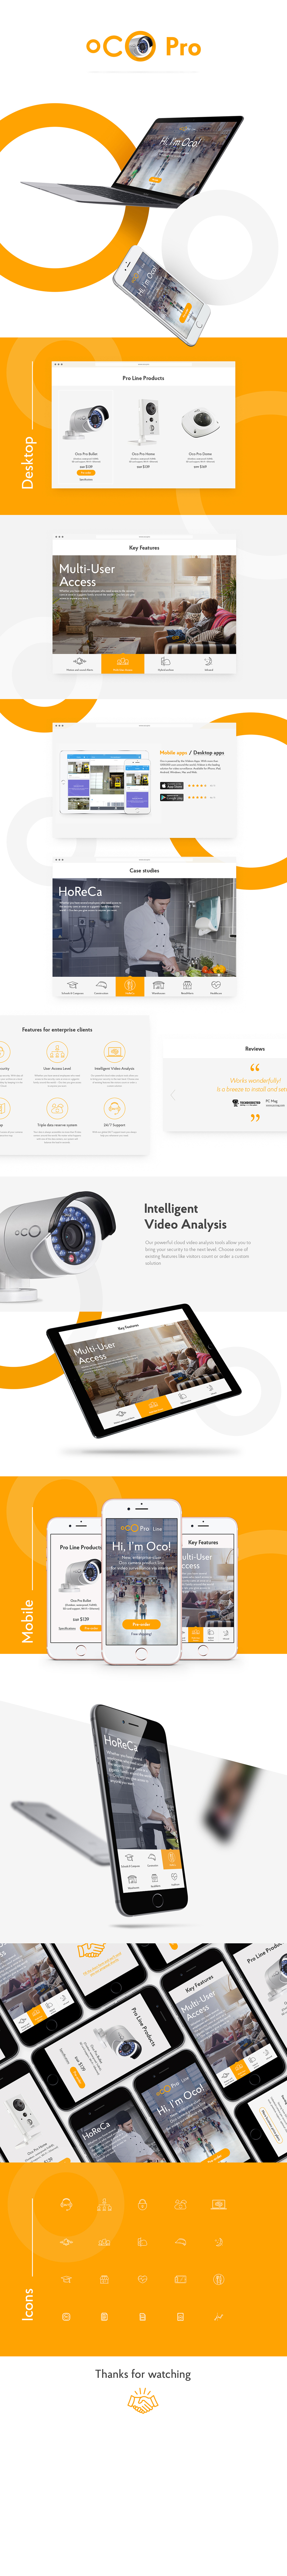 Smart cloud HD camera powered by Ivideon for monitoring